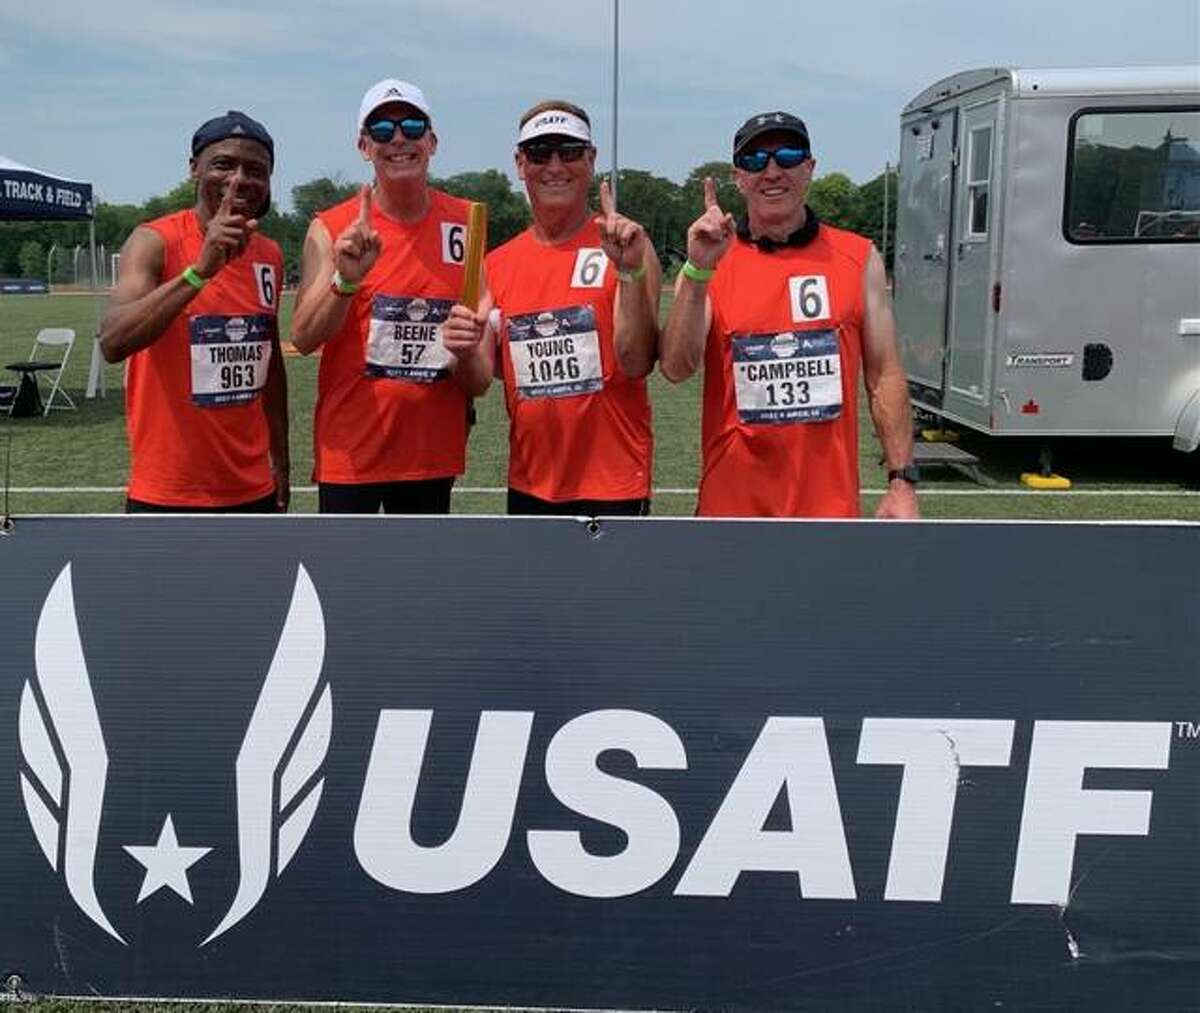 Wood River's Mike Young (second from right) and the other members of their national champion 400-meter relay team.